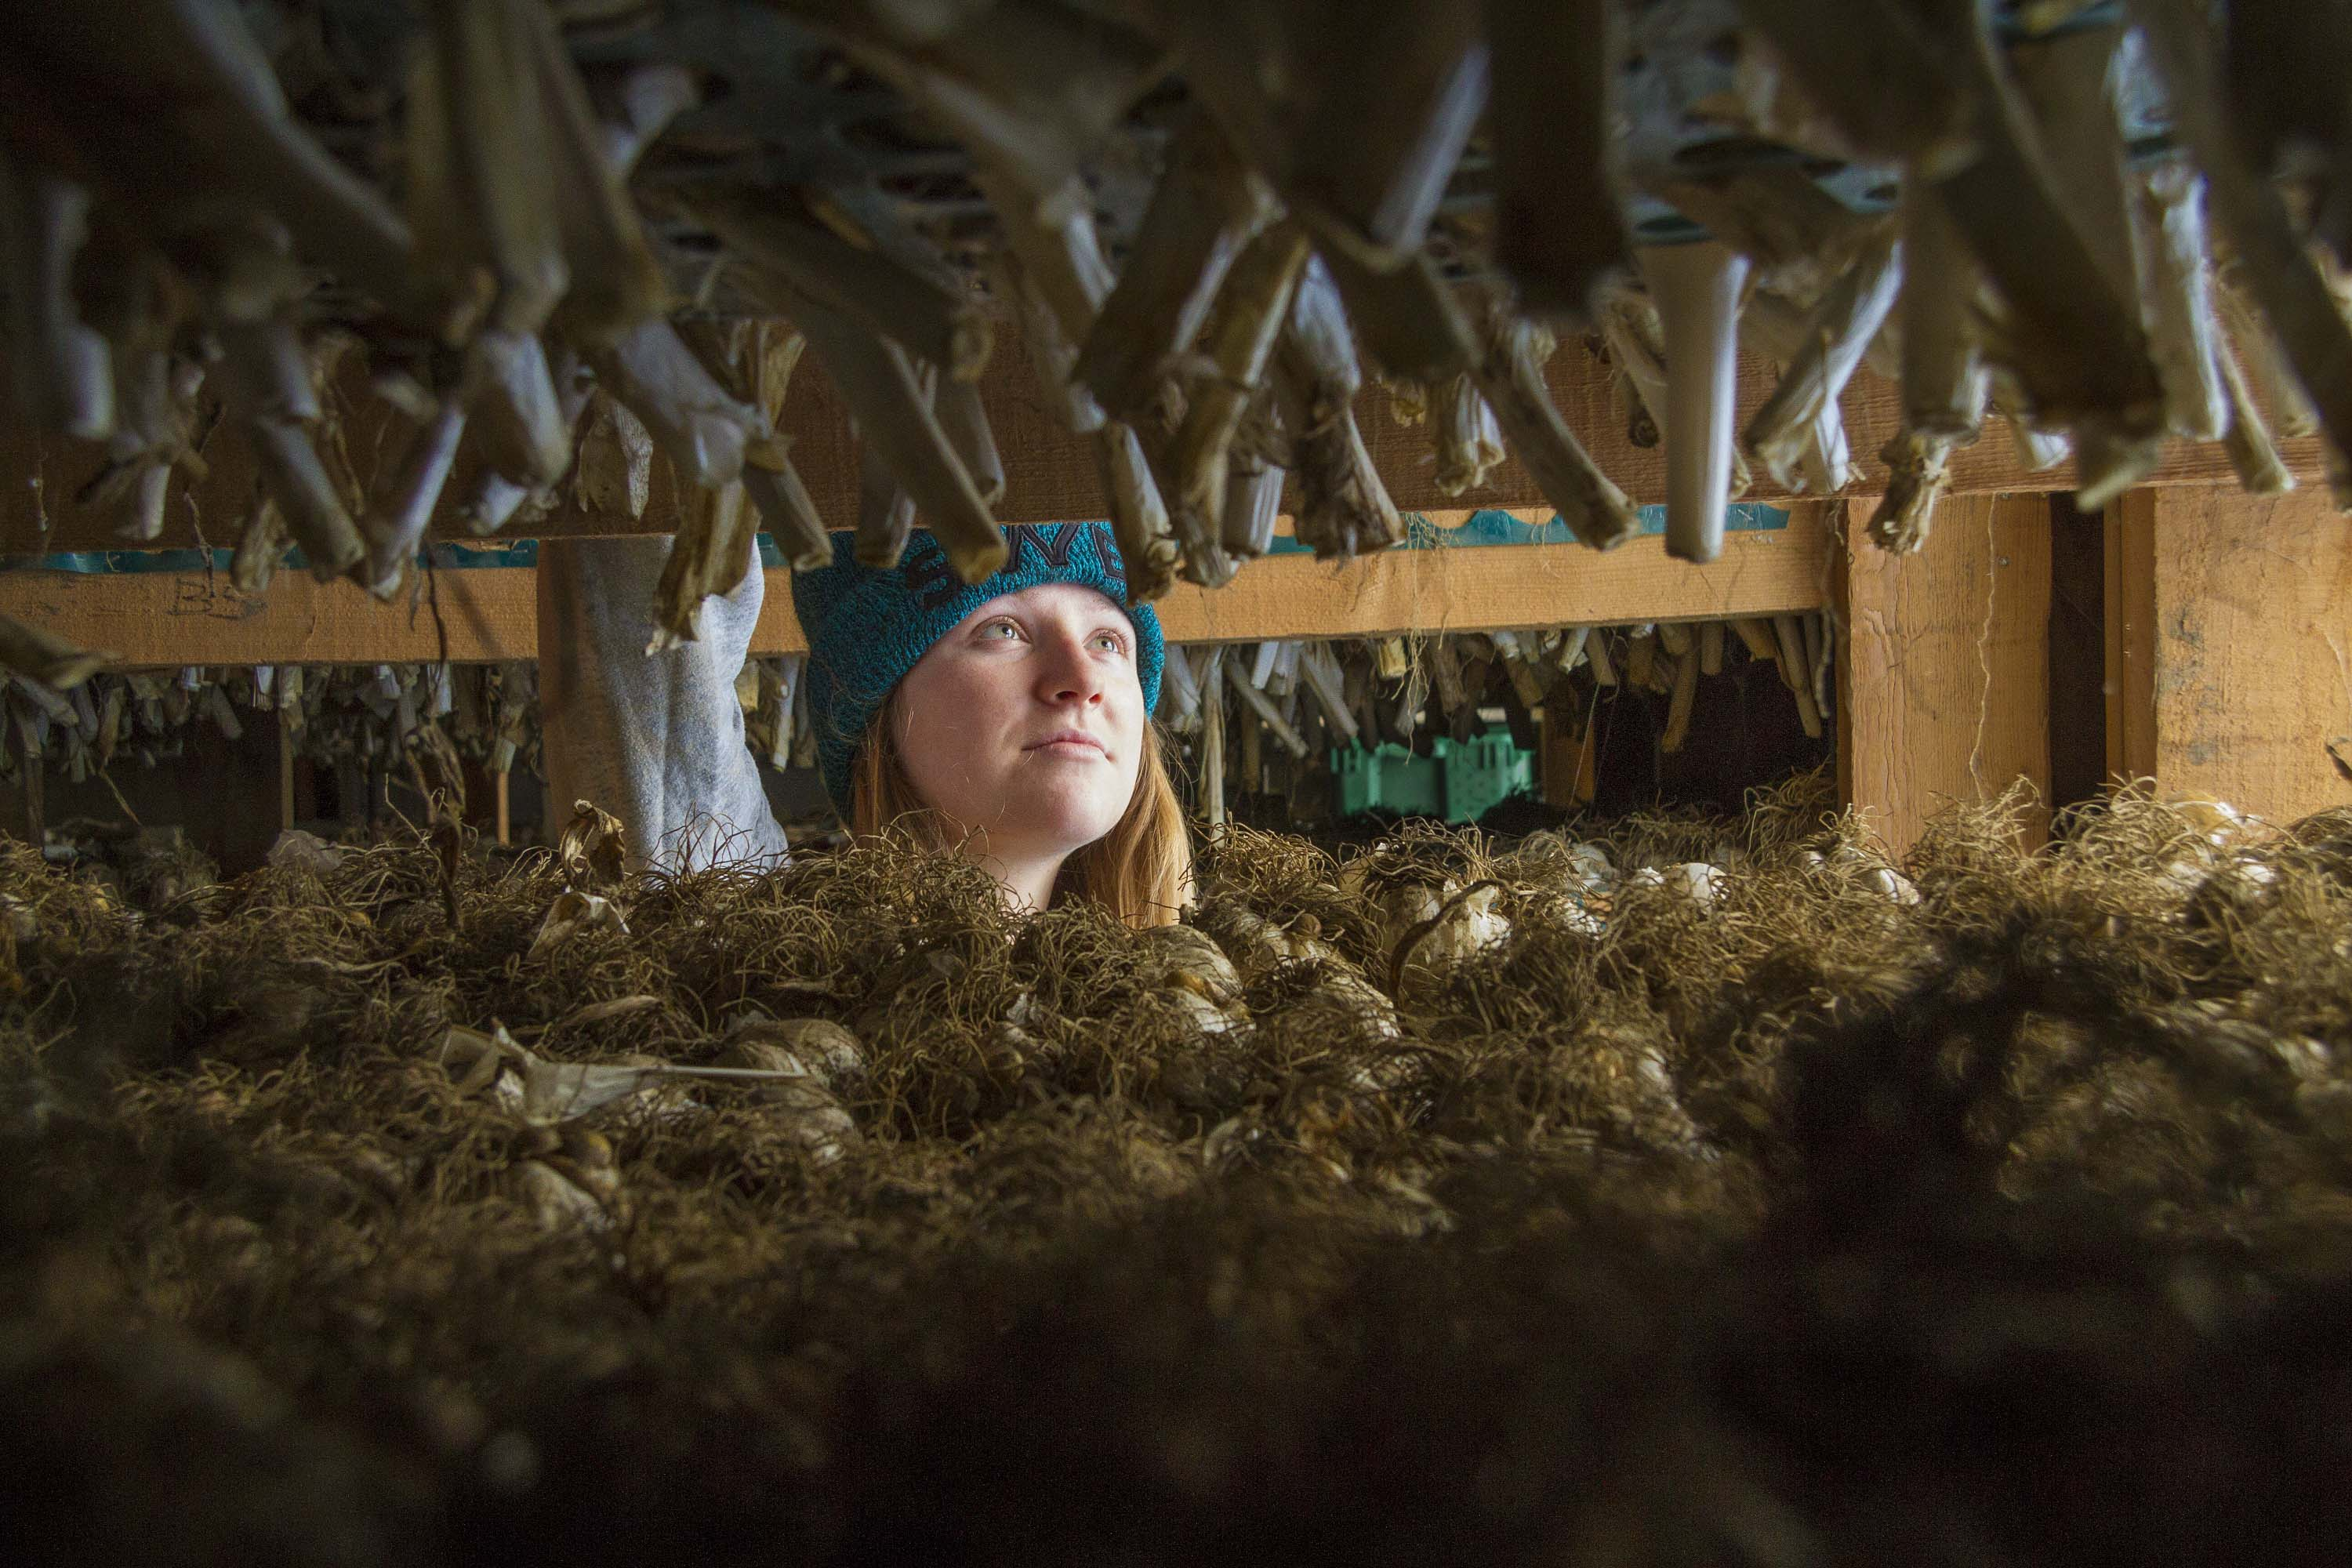 Featured in the March issue of Edible Western NY are Alan and Kathleen Ramm who have grown garlic on their 50-acre farm in Sherman since 1999. Pictured is Rebecca Ramm, granddaughter of Alan and Kathleen,  who helps on the farm. (Photo by Ed Bernik, courtesy of Edible Western NY.)